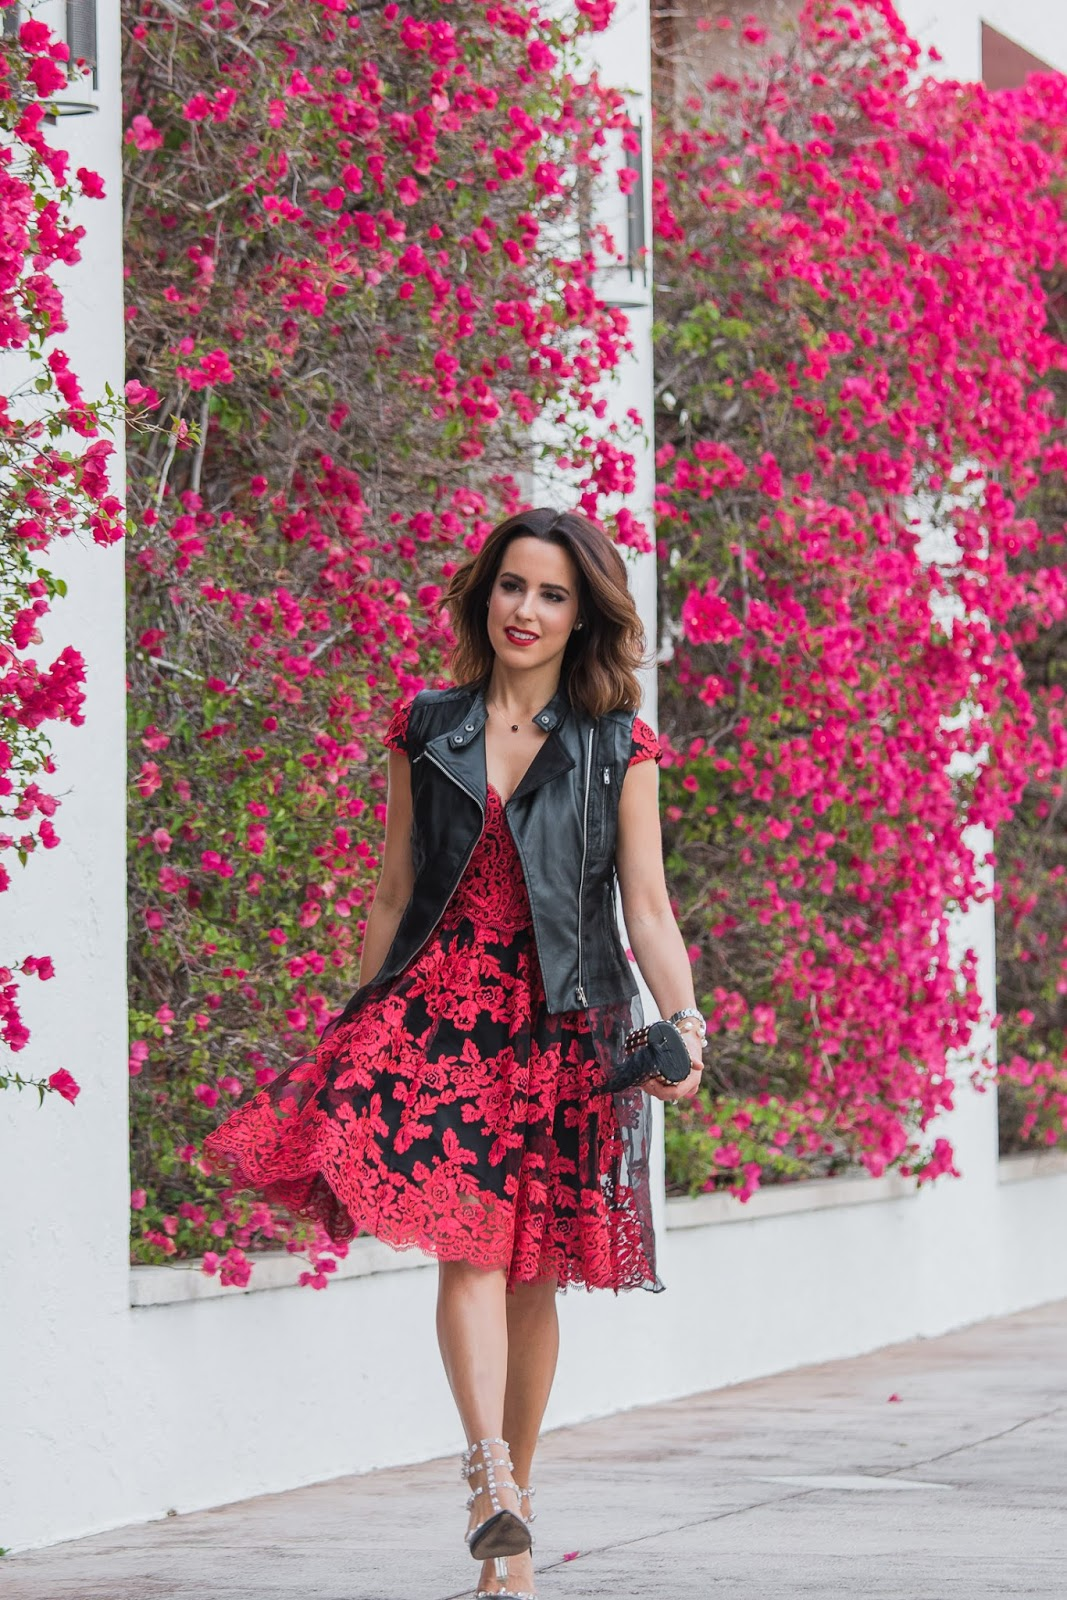 Lace Dress, Rockstuds, & Moto Vest by Fashion Blogger Kelly Saks